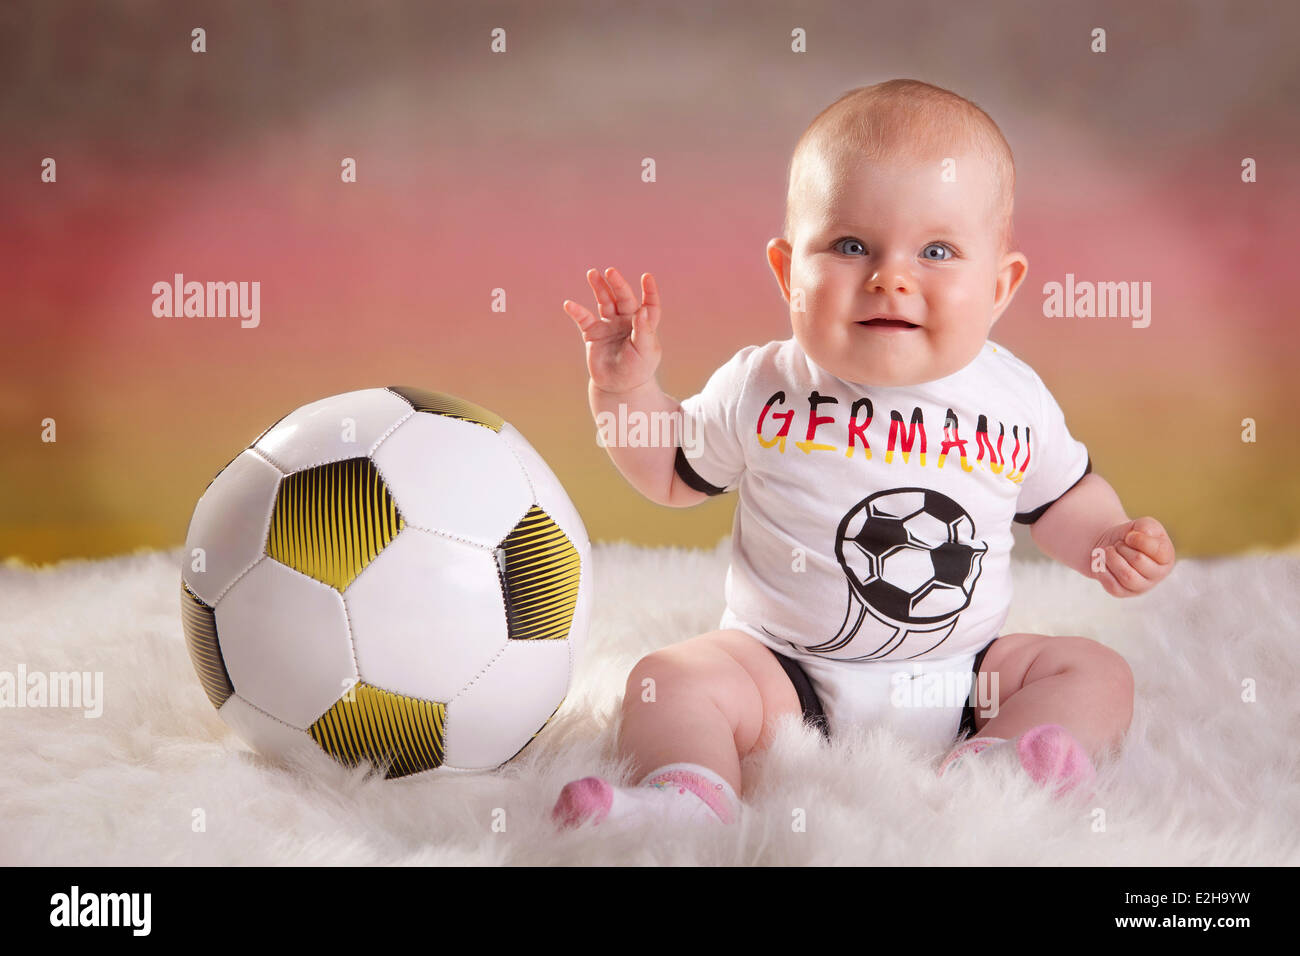 Where To Buy Baby Clothes In Germany